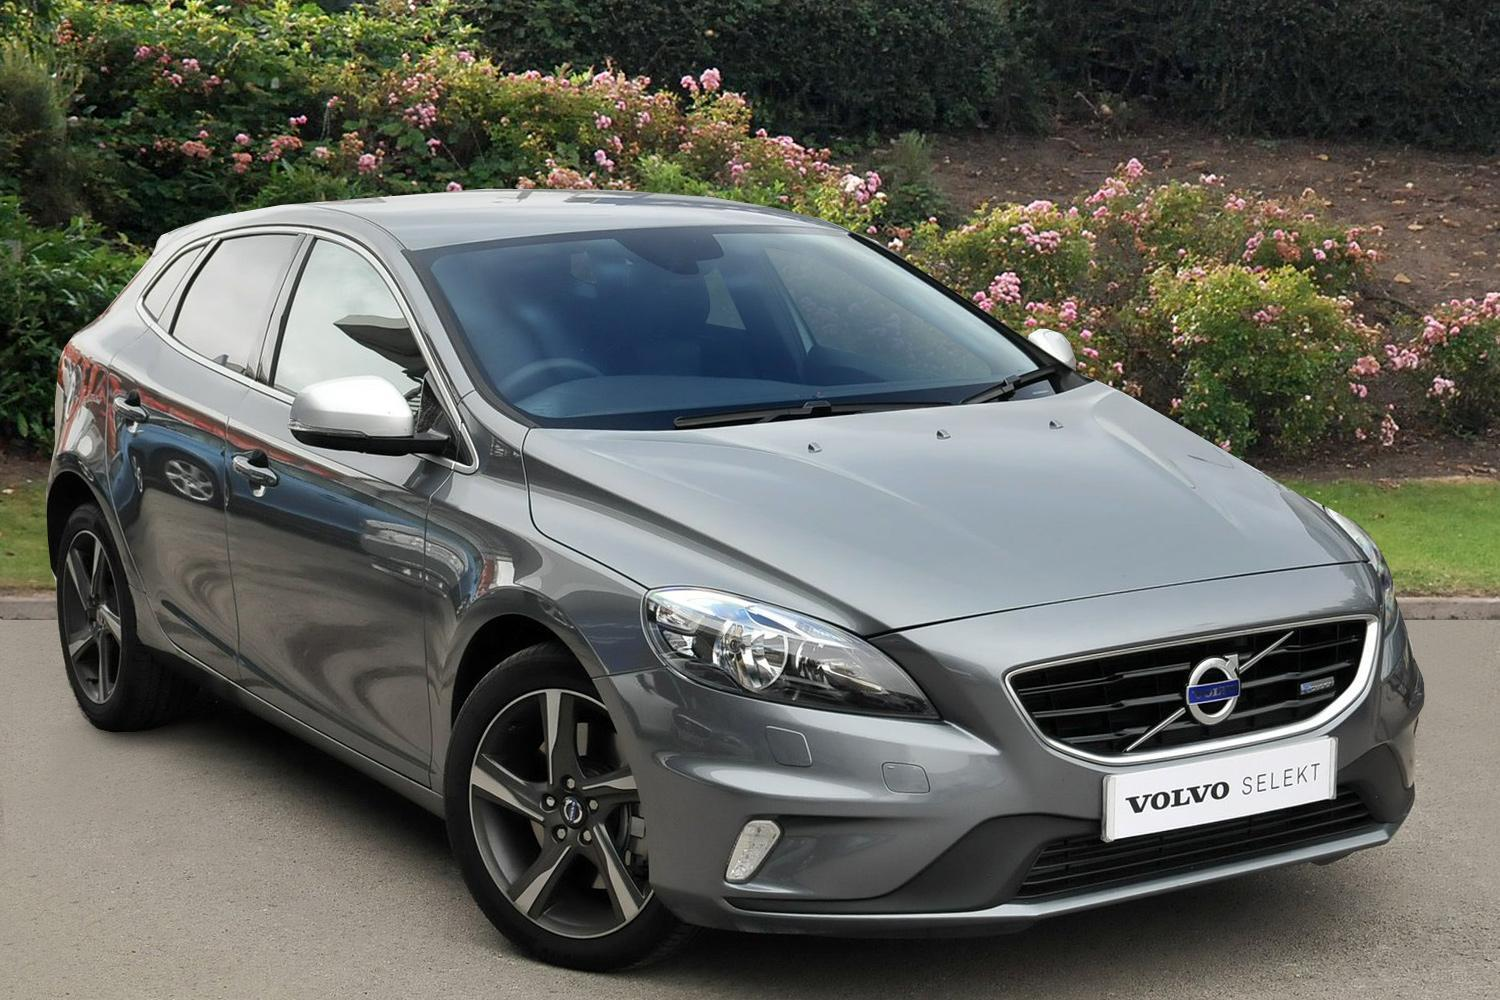 used volvo v40 d4 190 r design nav 5dr geartronic diesel hatchback for sale newcastle infiniti. Black Bedroom Furniture Sets. Home Design Ideas